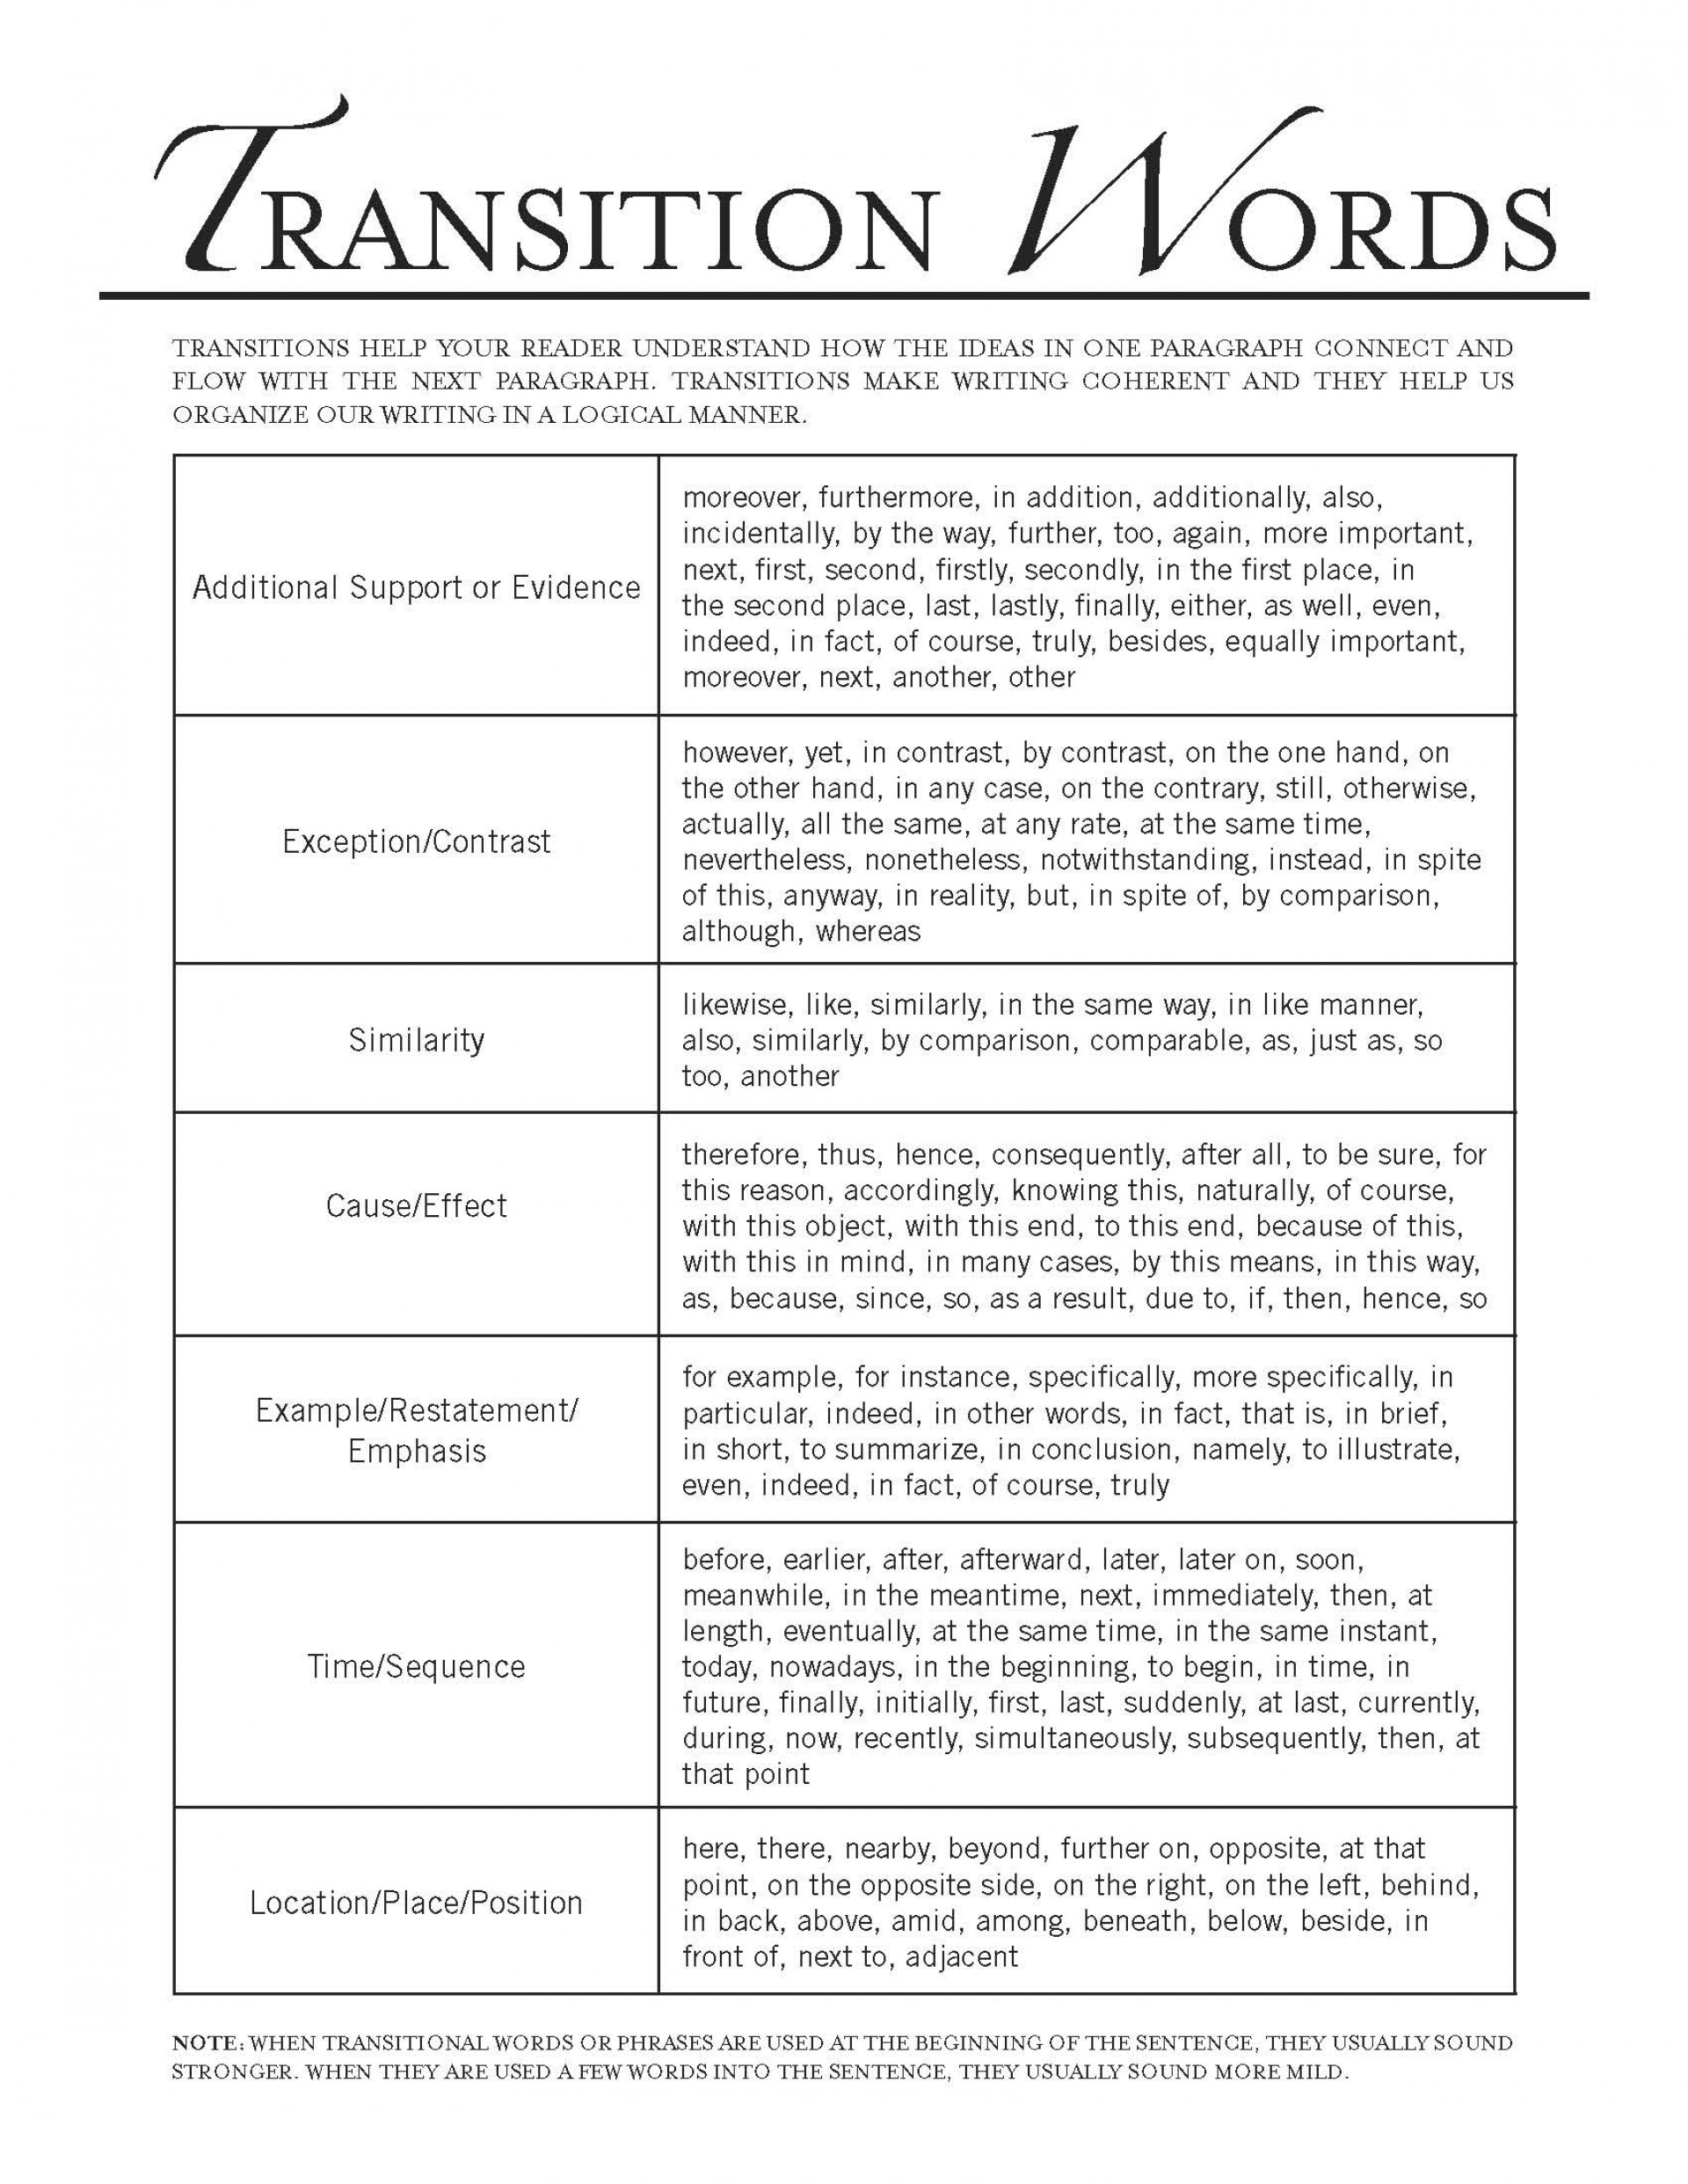 002 Essay Example Argumentative Transitions Transitionsl1 Page 1 Stupendous Transition Phrases 1920